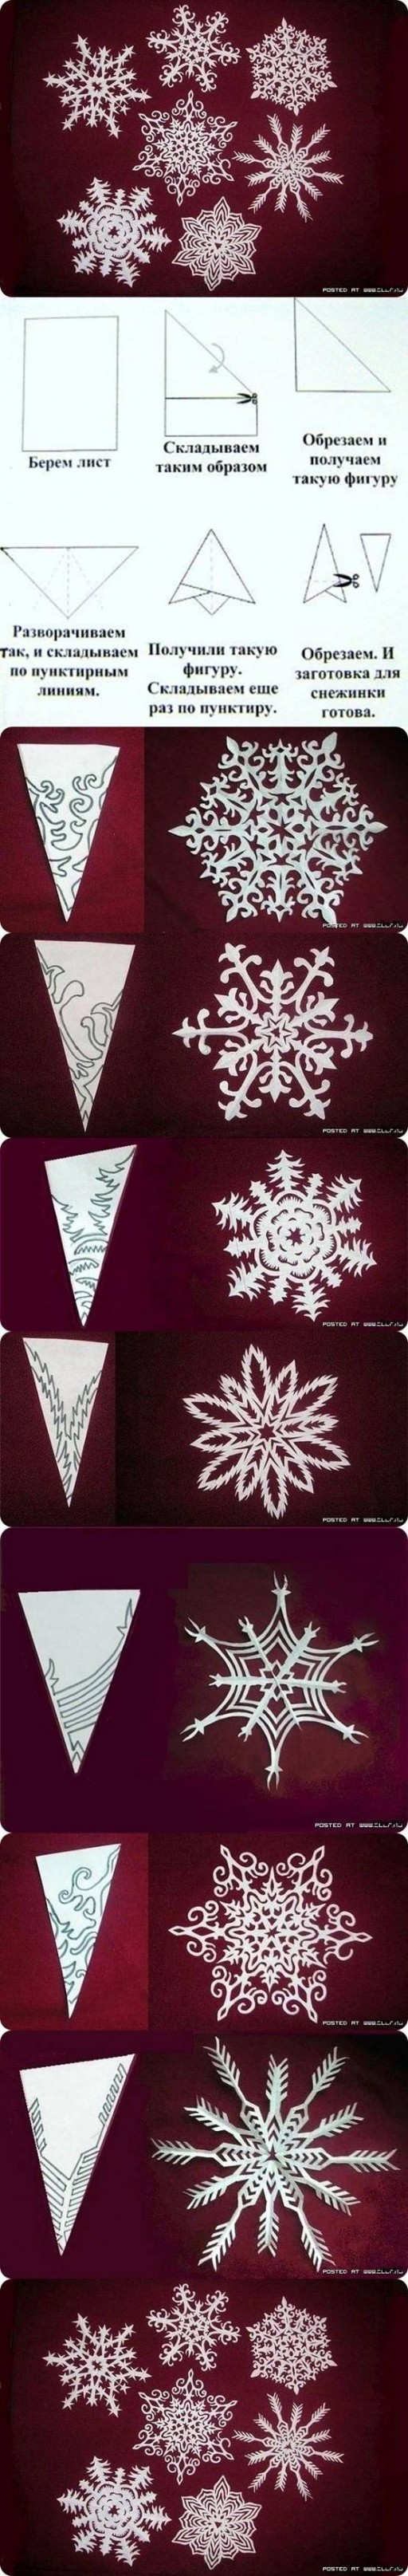 How to make Snowflakes of Paper step by step DIY tutorial instructions